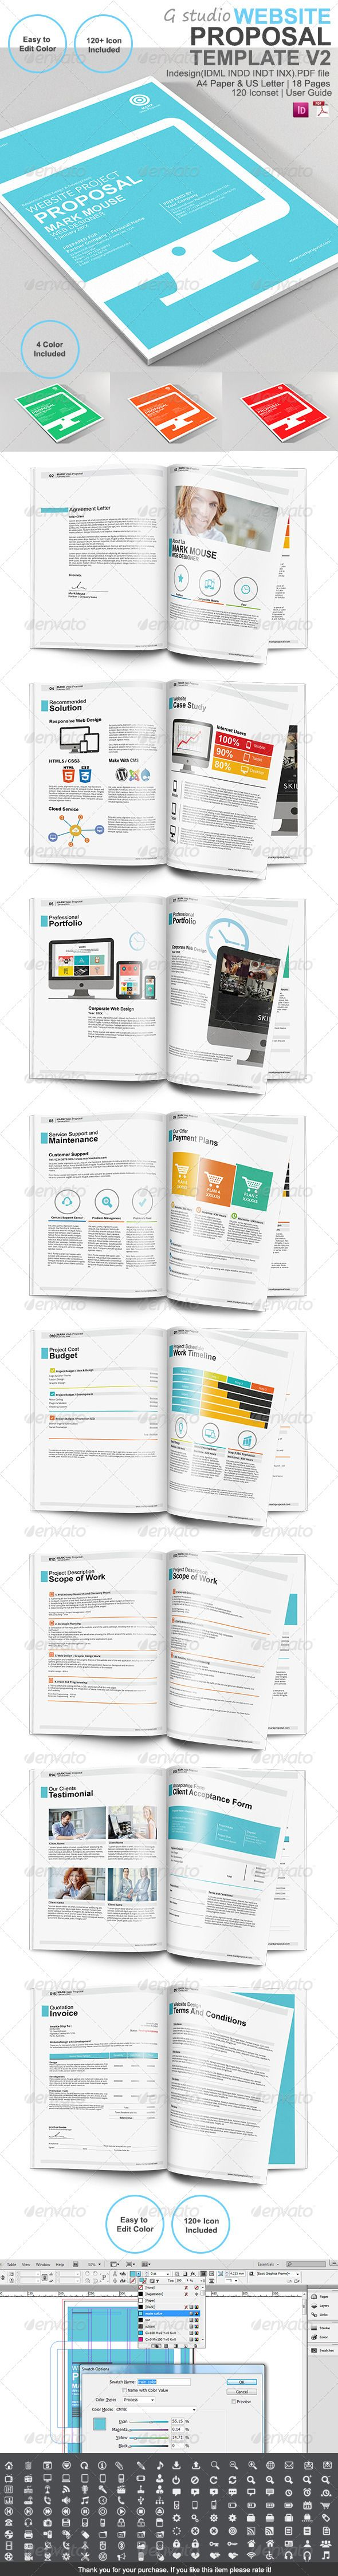 Gstudio Website Proposal Template V2 by terusawa Live Preview Proposal template design is easy Customize or change color